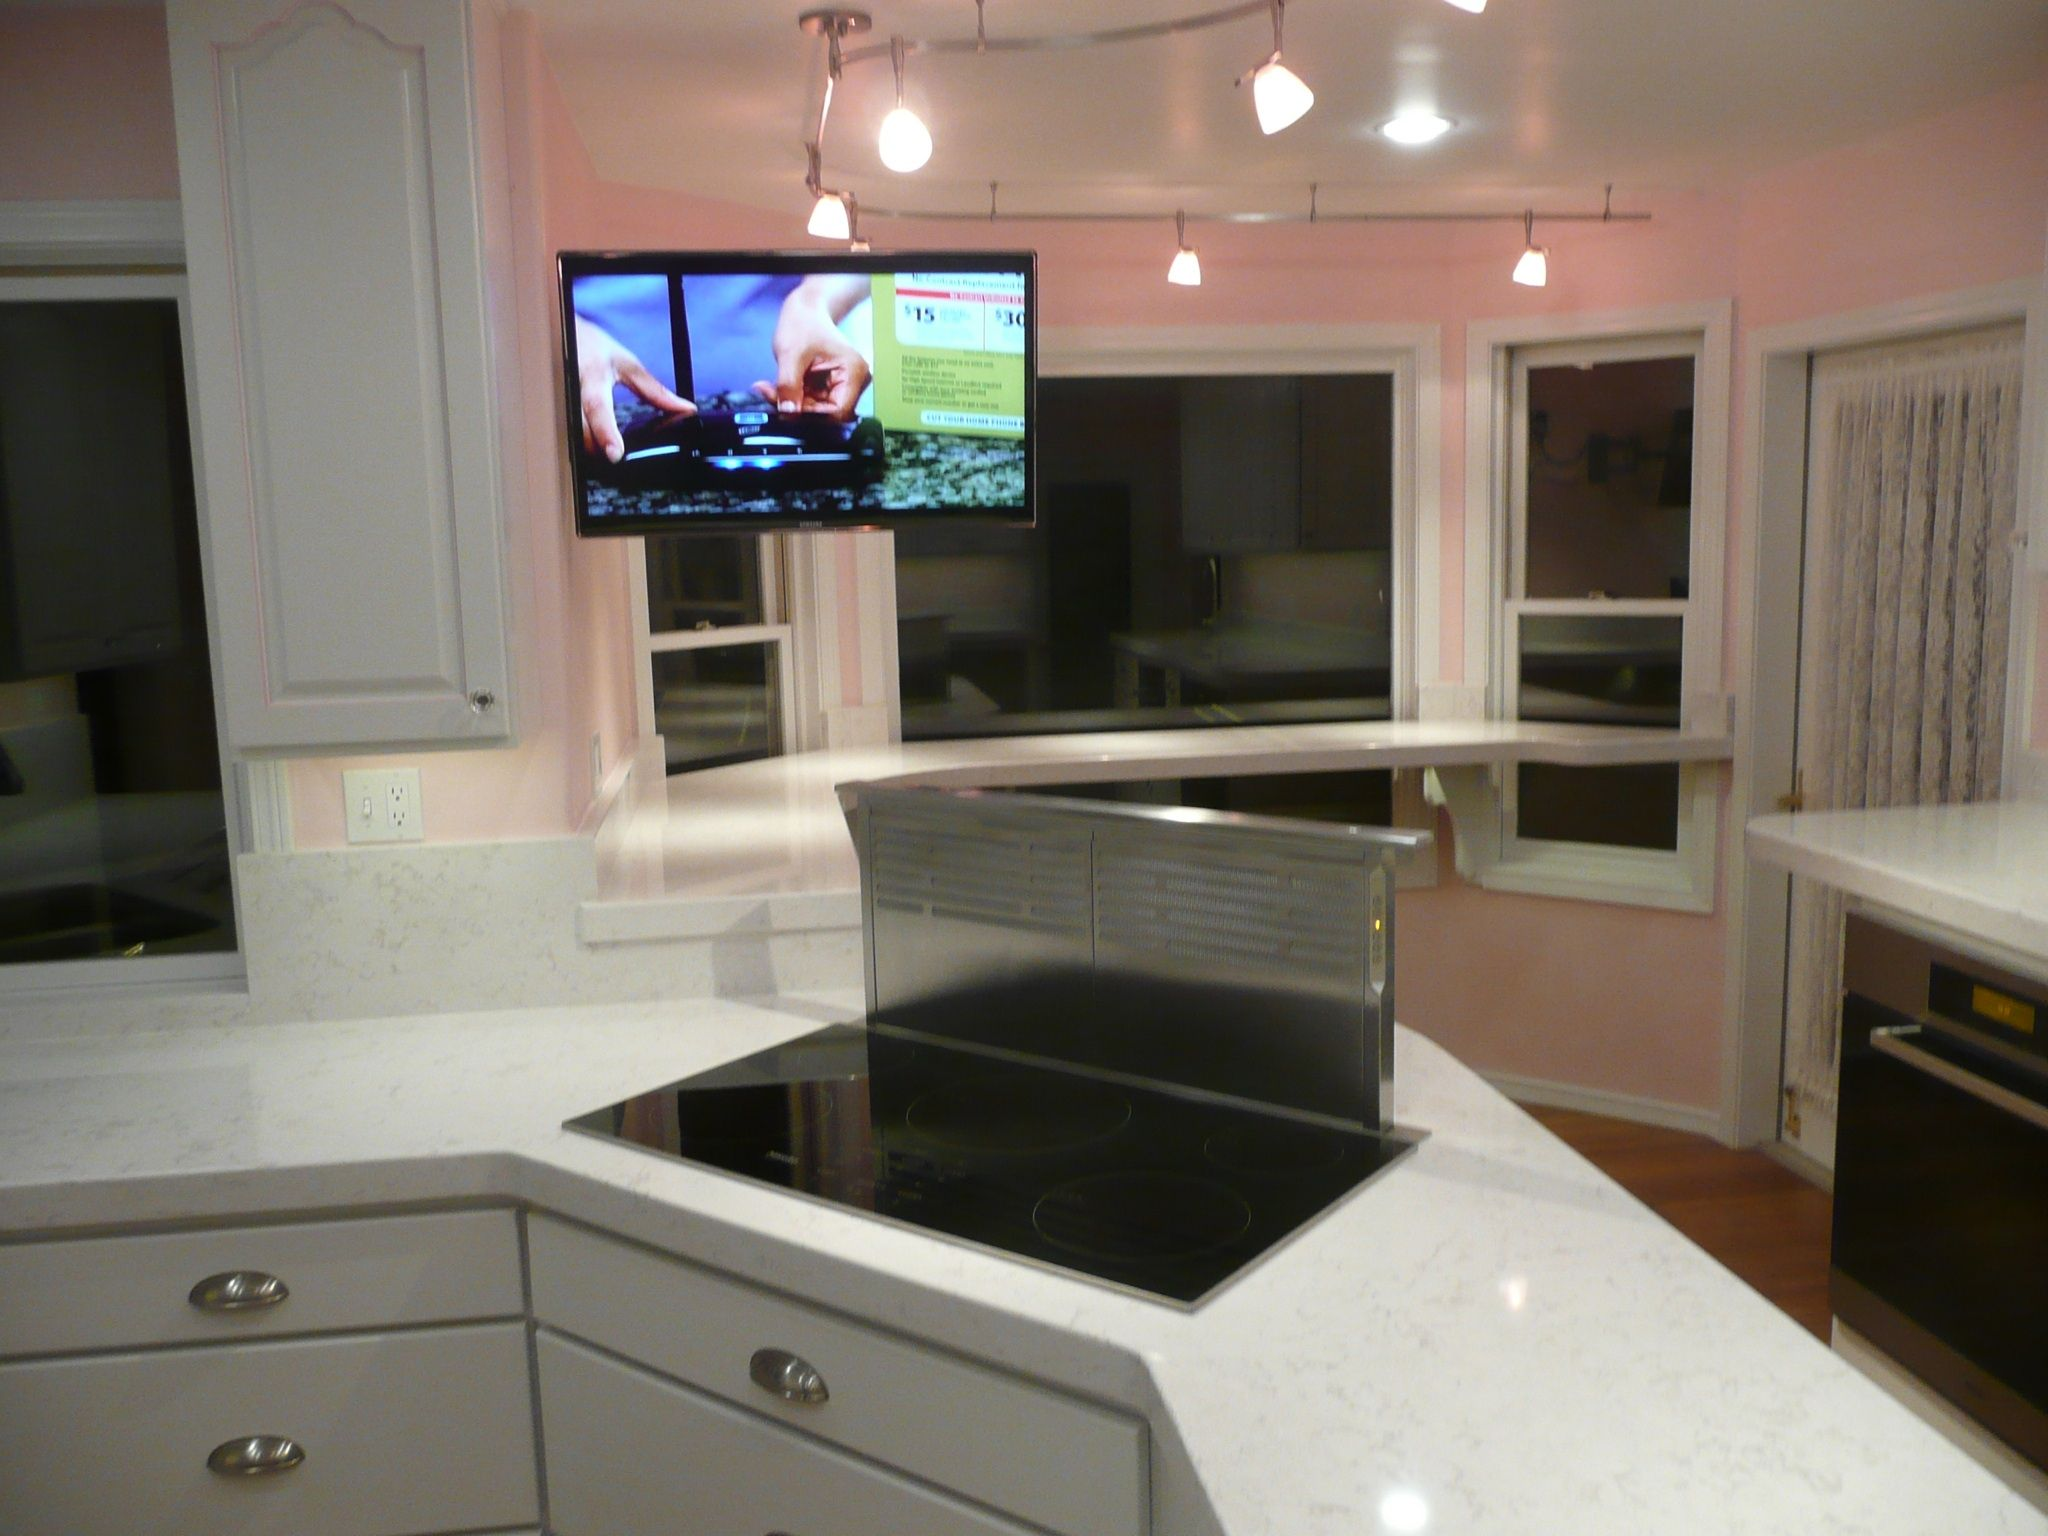 Kitchen Island With Range Miele Induction Cooktop And Downdraft Vent Cambria